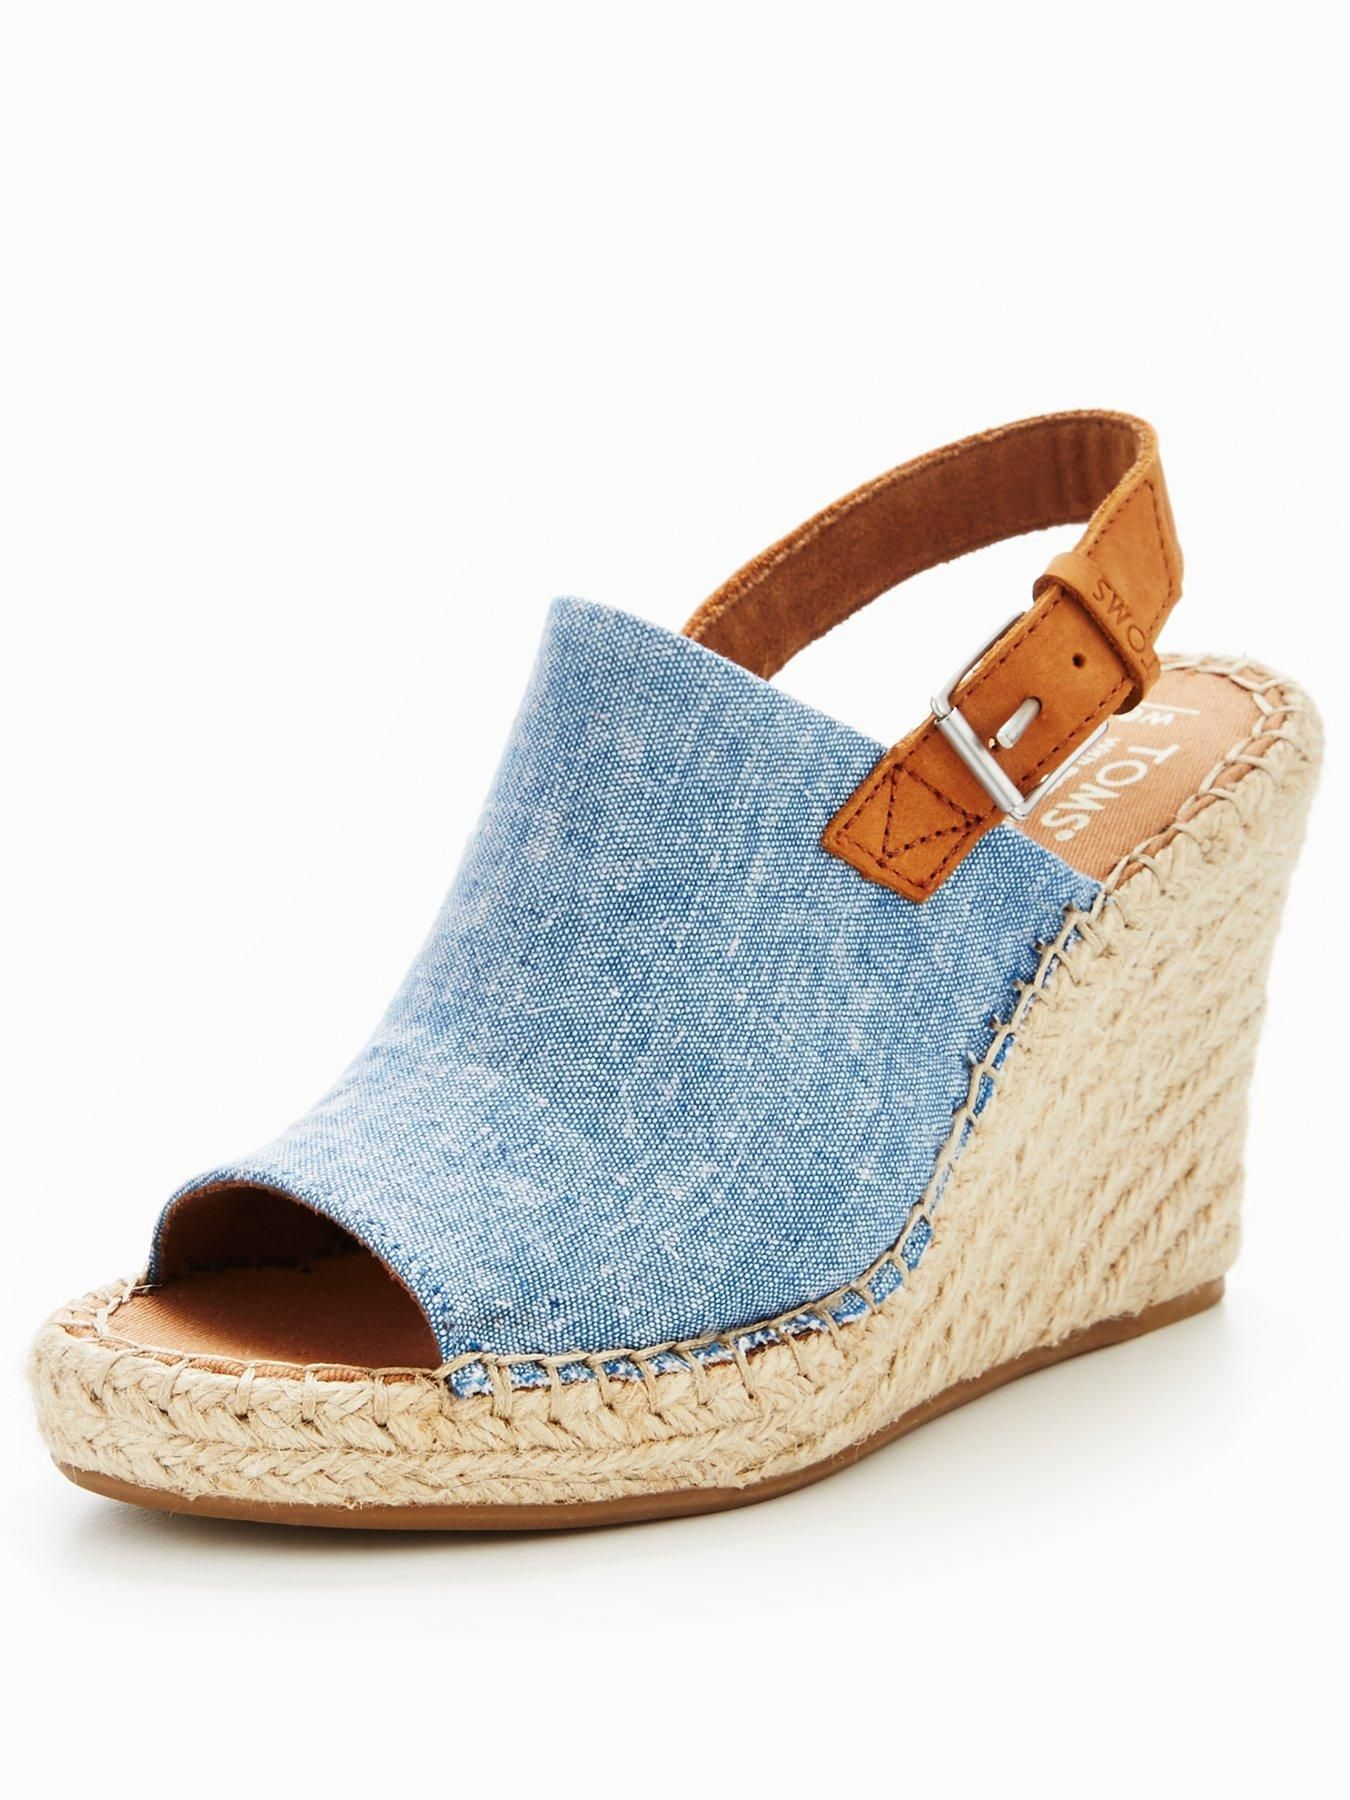 43008c1c7547 Bringing your love of denim through to your shoe-drobe this summer ...